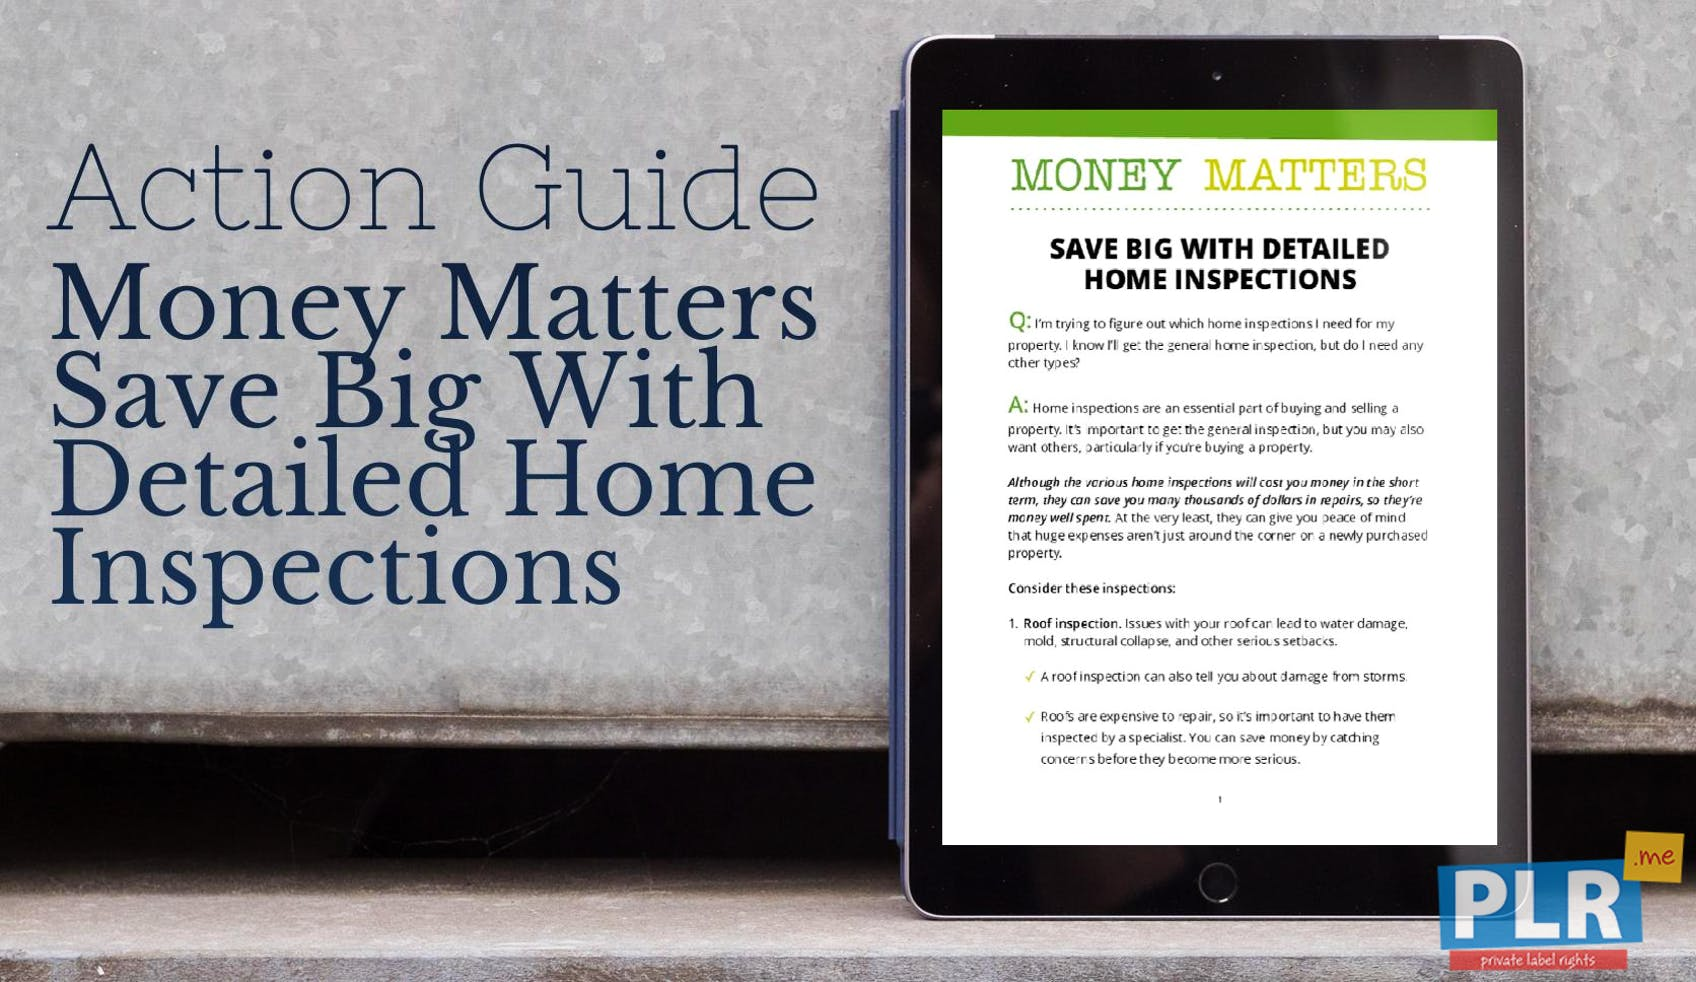 Money Matters Save Big With Detailed Home Inspections